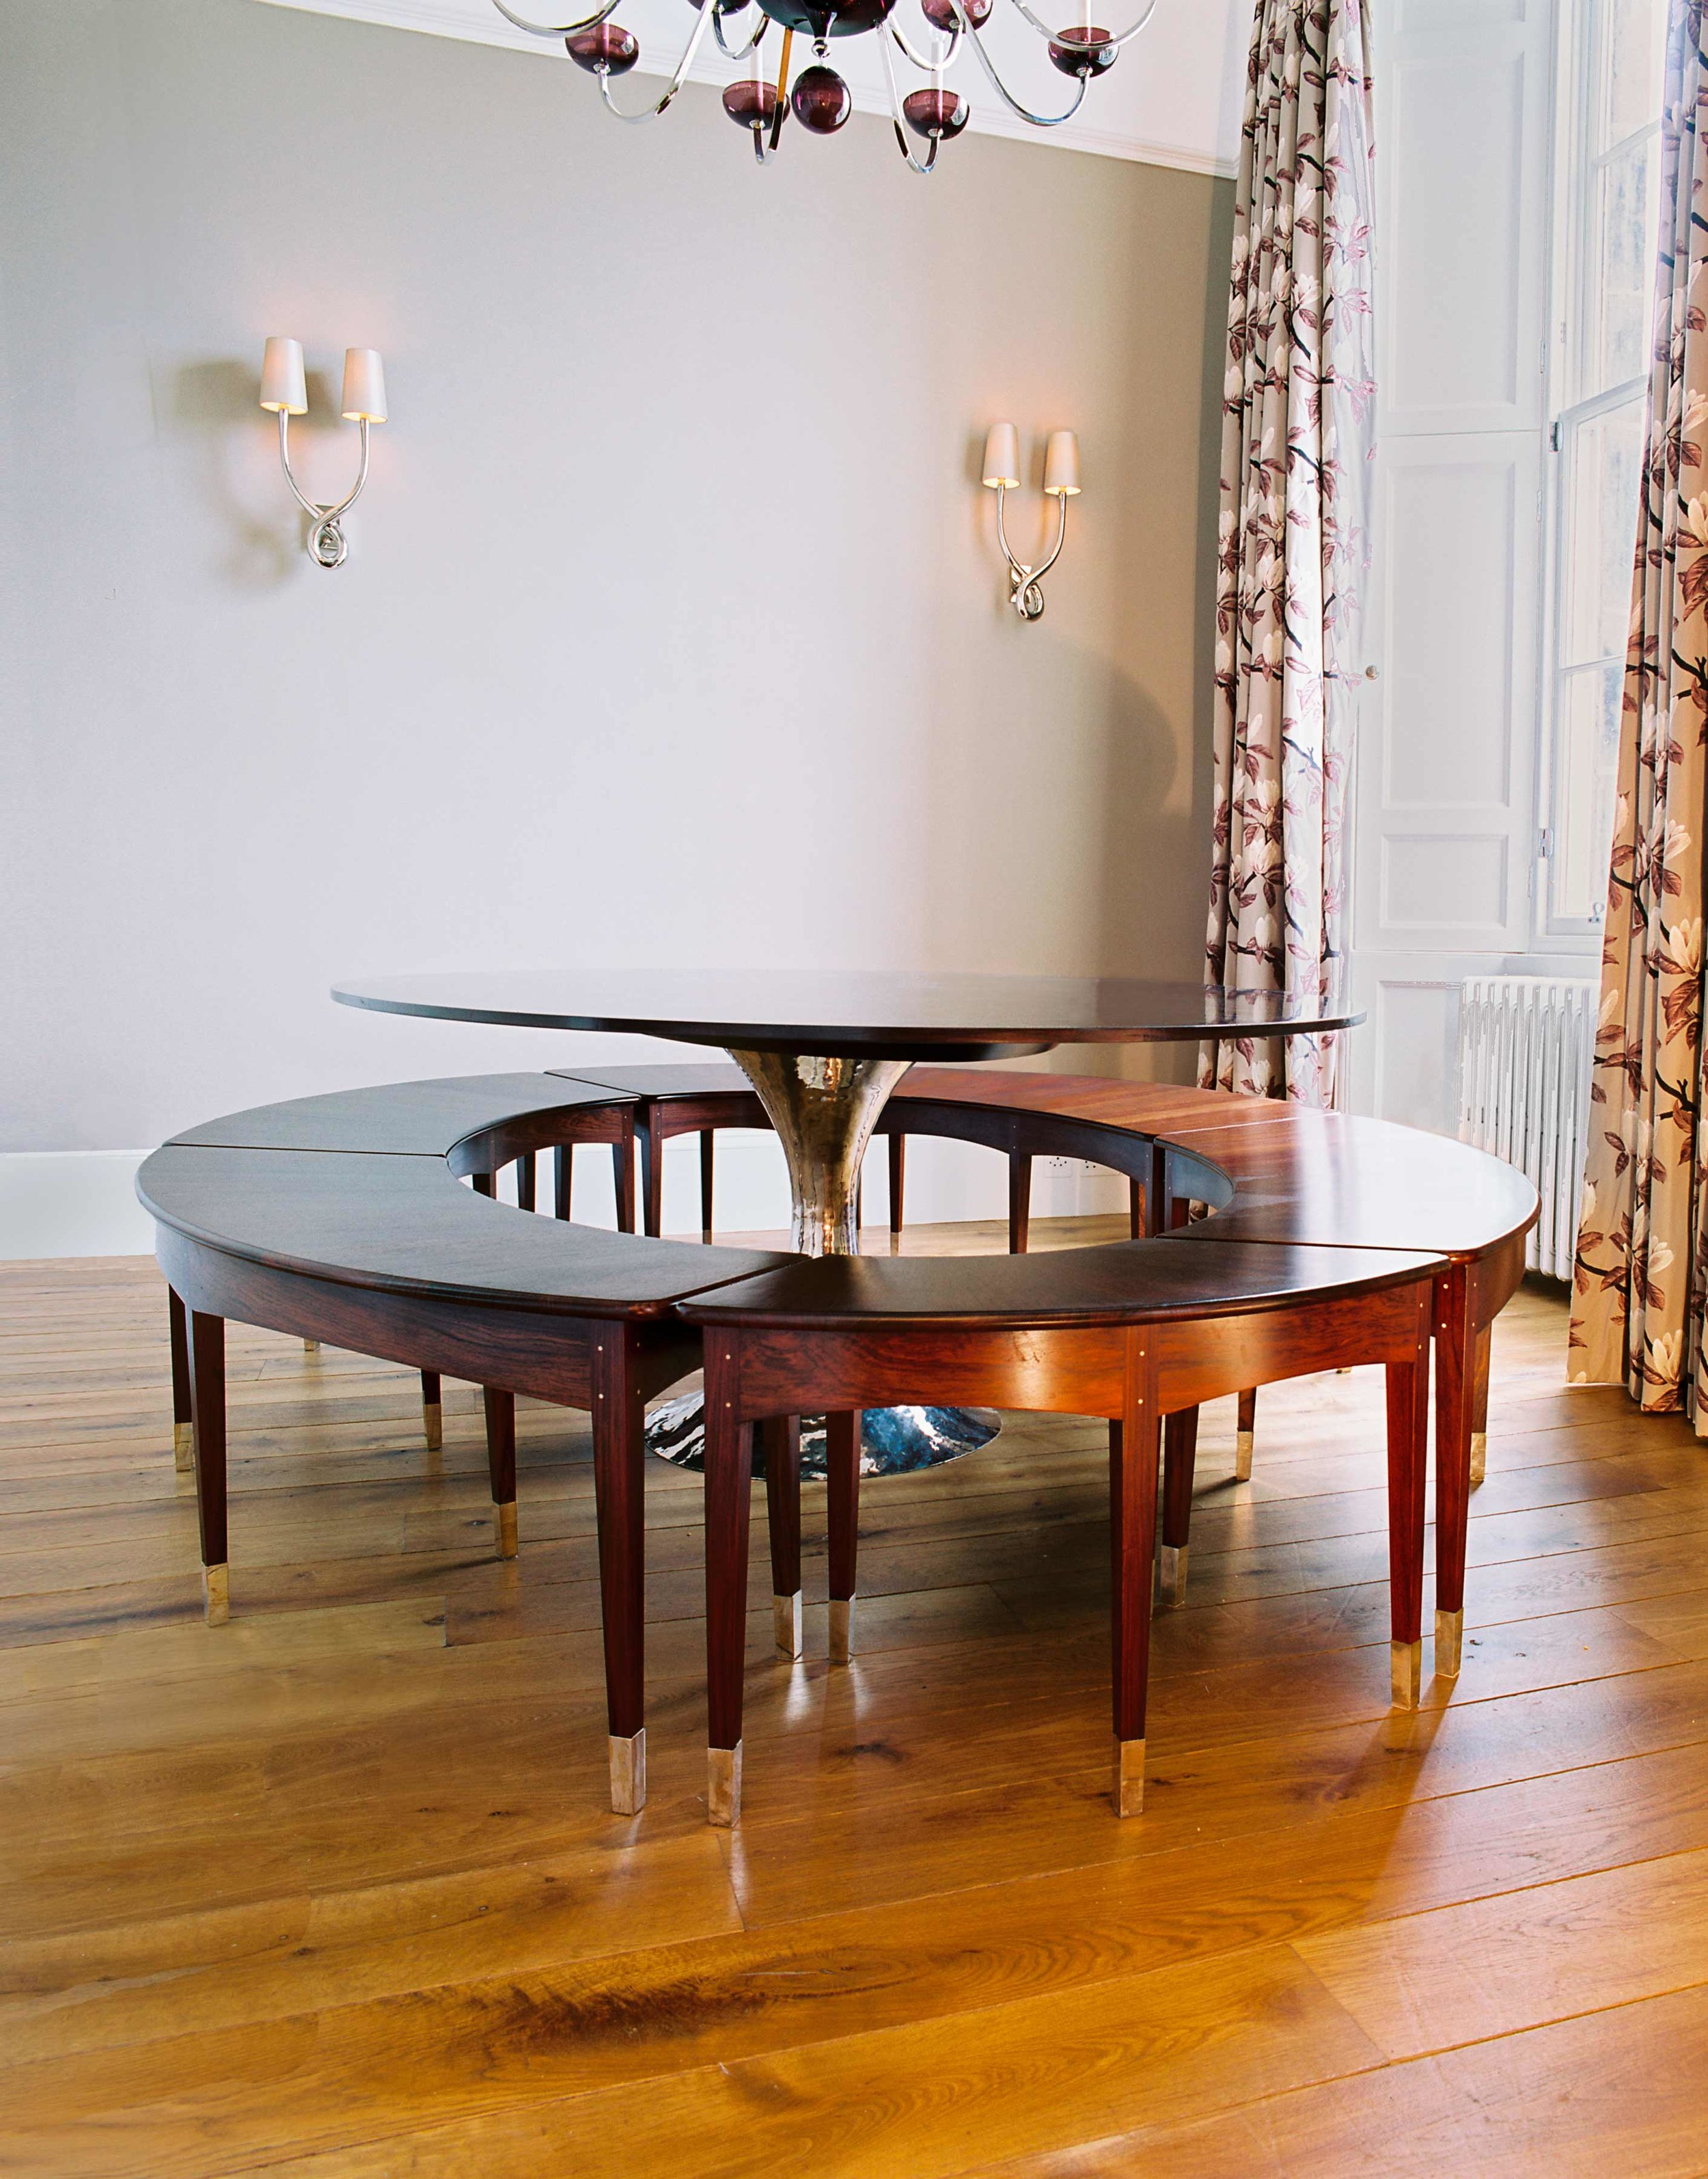 Rosewood elliptical seats and radial rosewood veneered table top, Heriot Row, Edinburgh.